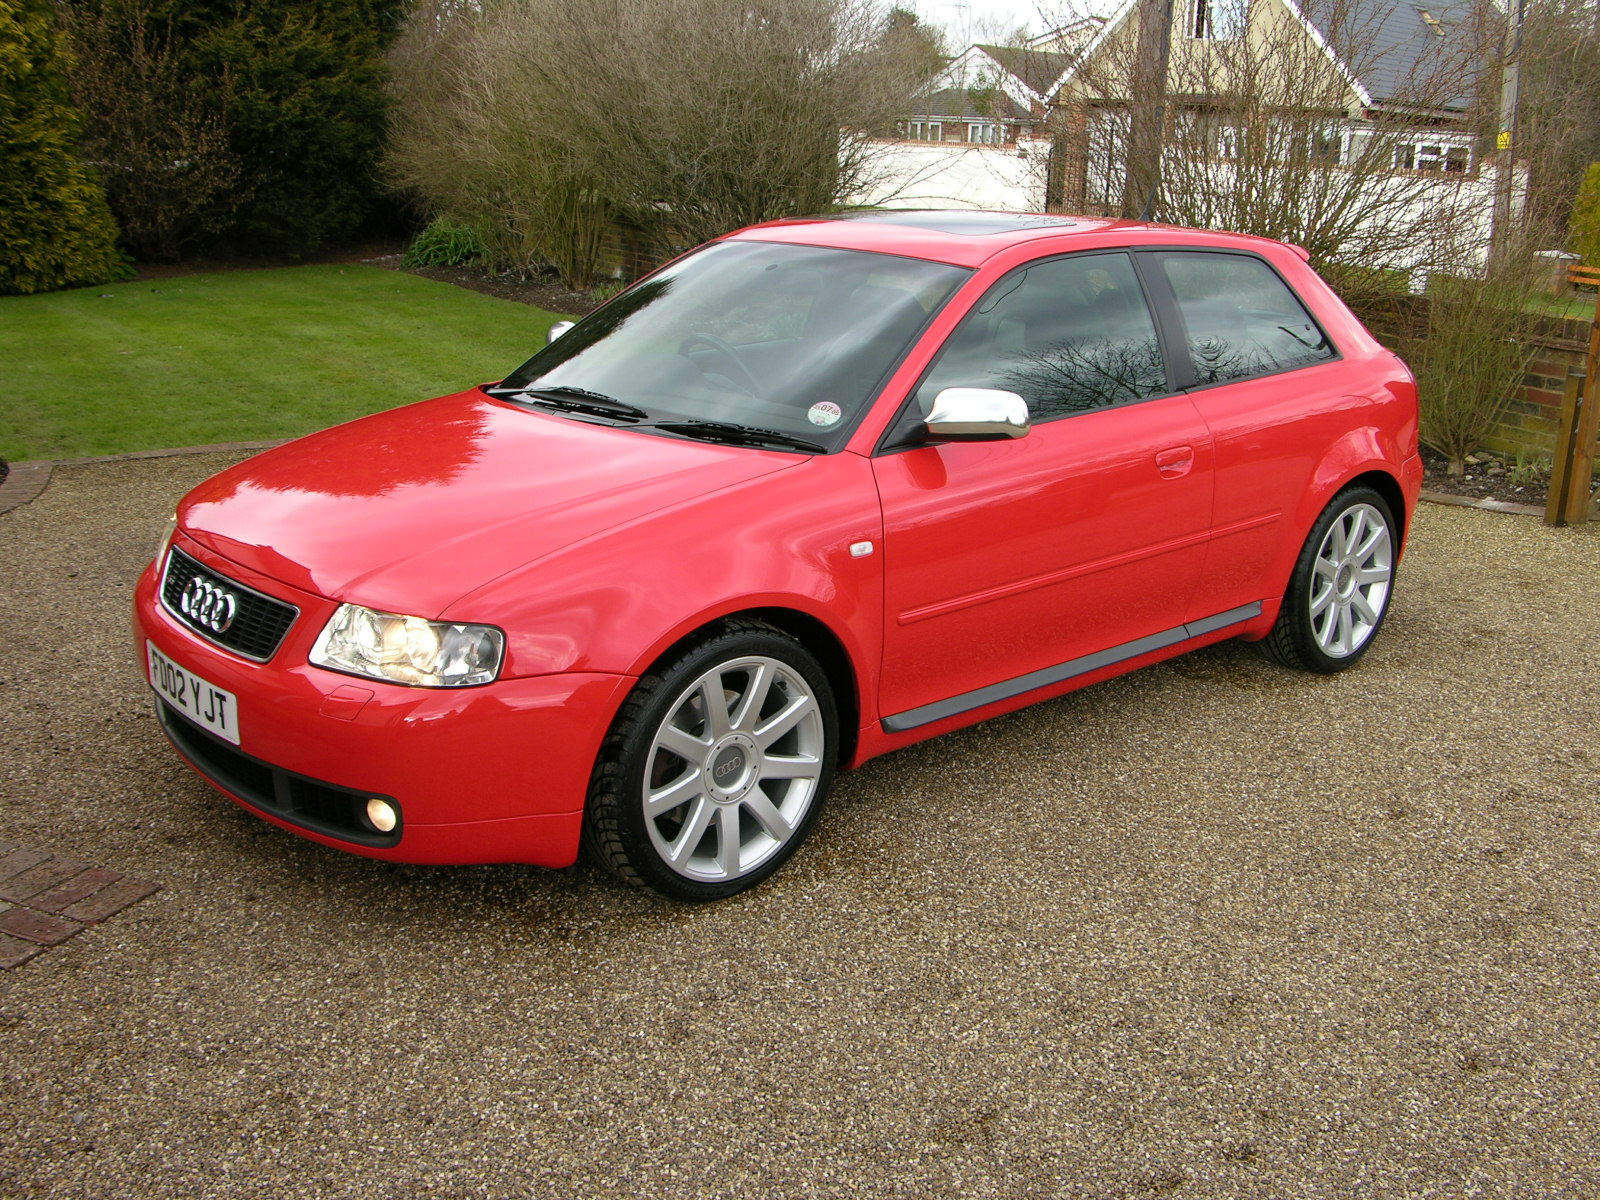 file audi s3 2002 absolute red flickr the car spy 11 jpg wikimedia commons. Black Bedroom Furniture Sets. Home Design Ideas